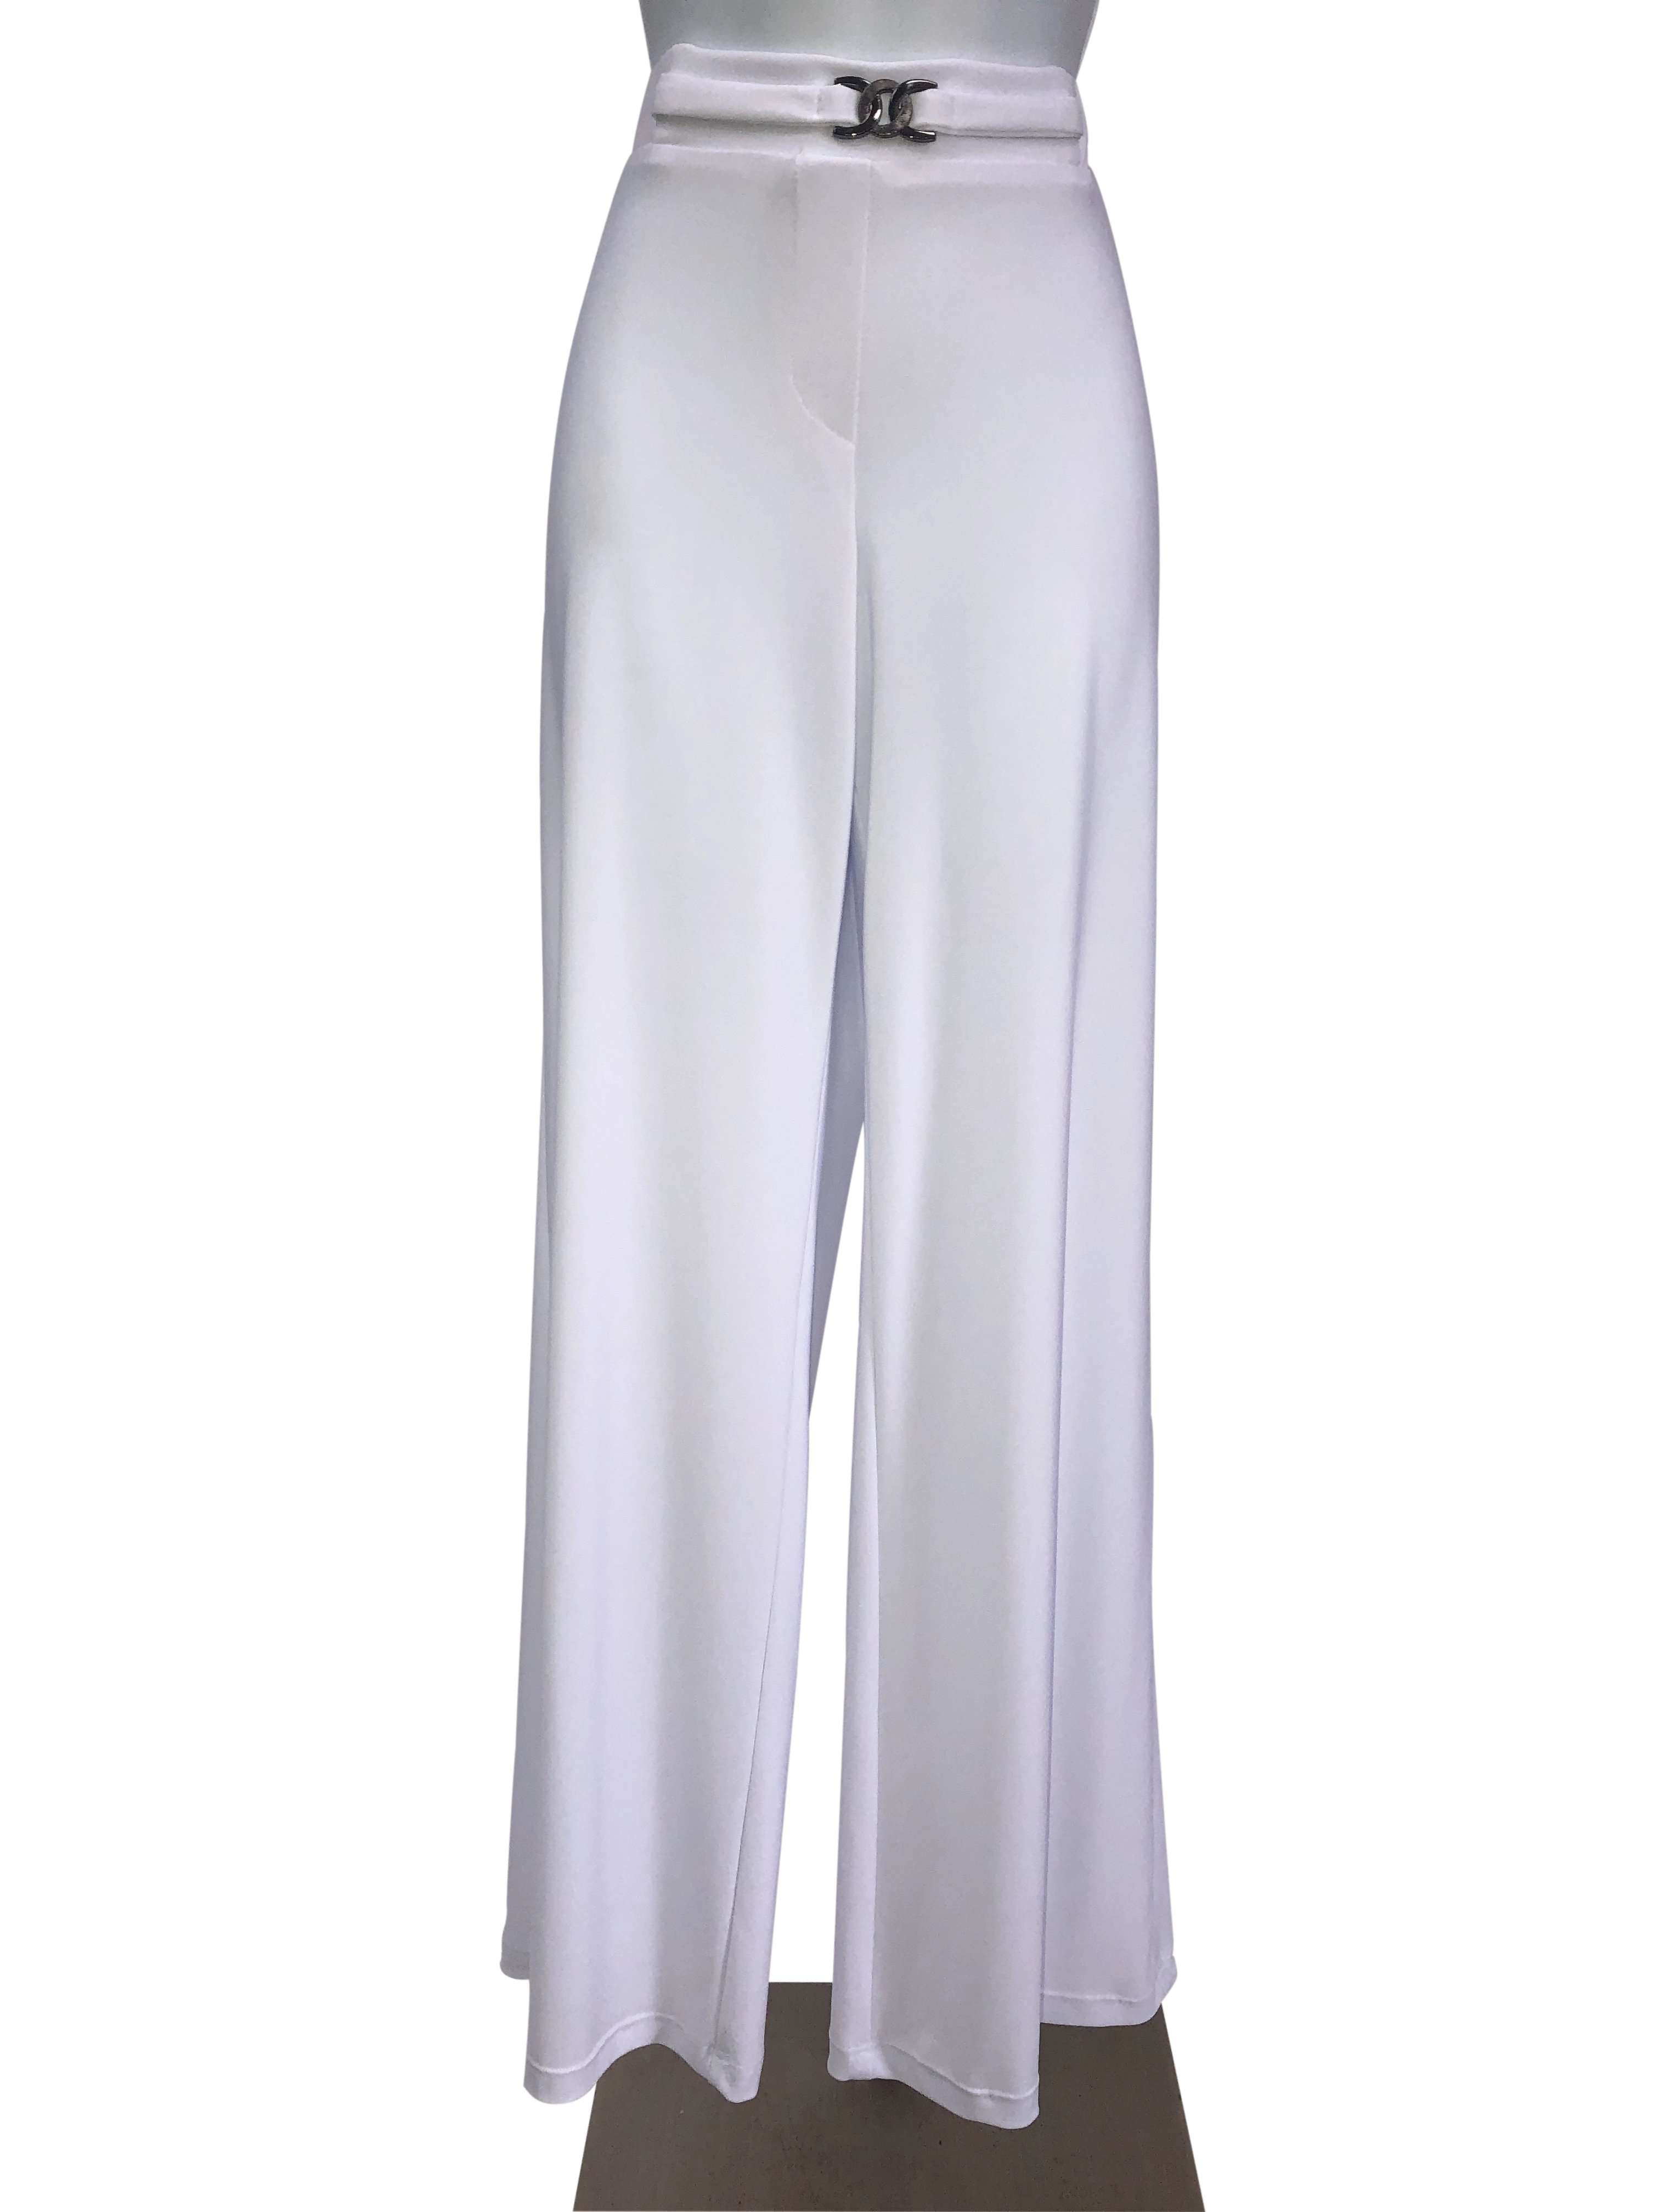 Women's White Stretch Pants - Yvonne Marie - Yvonne Marie